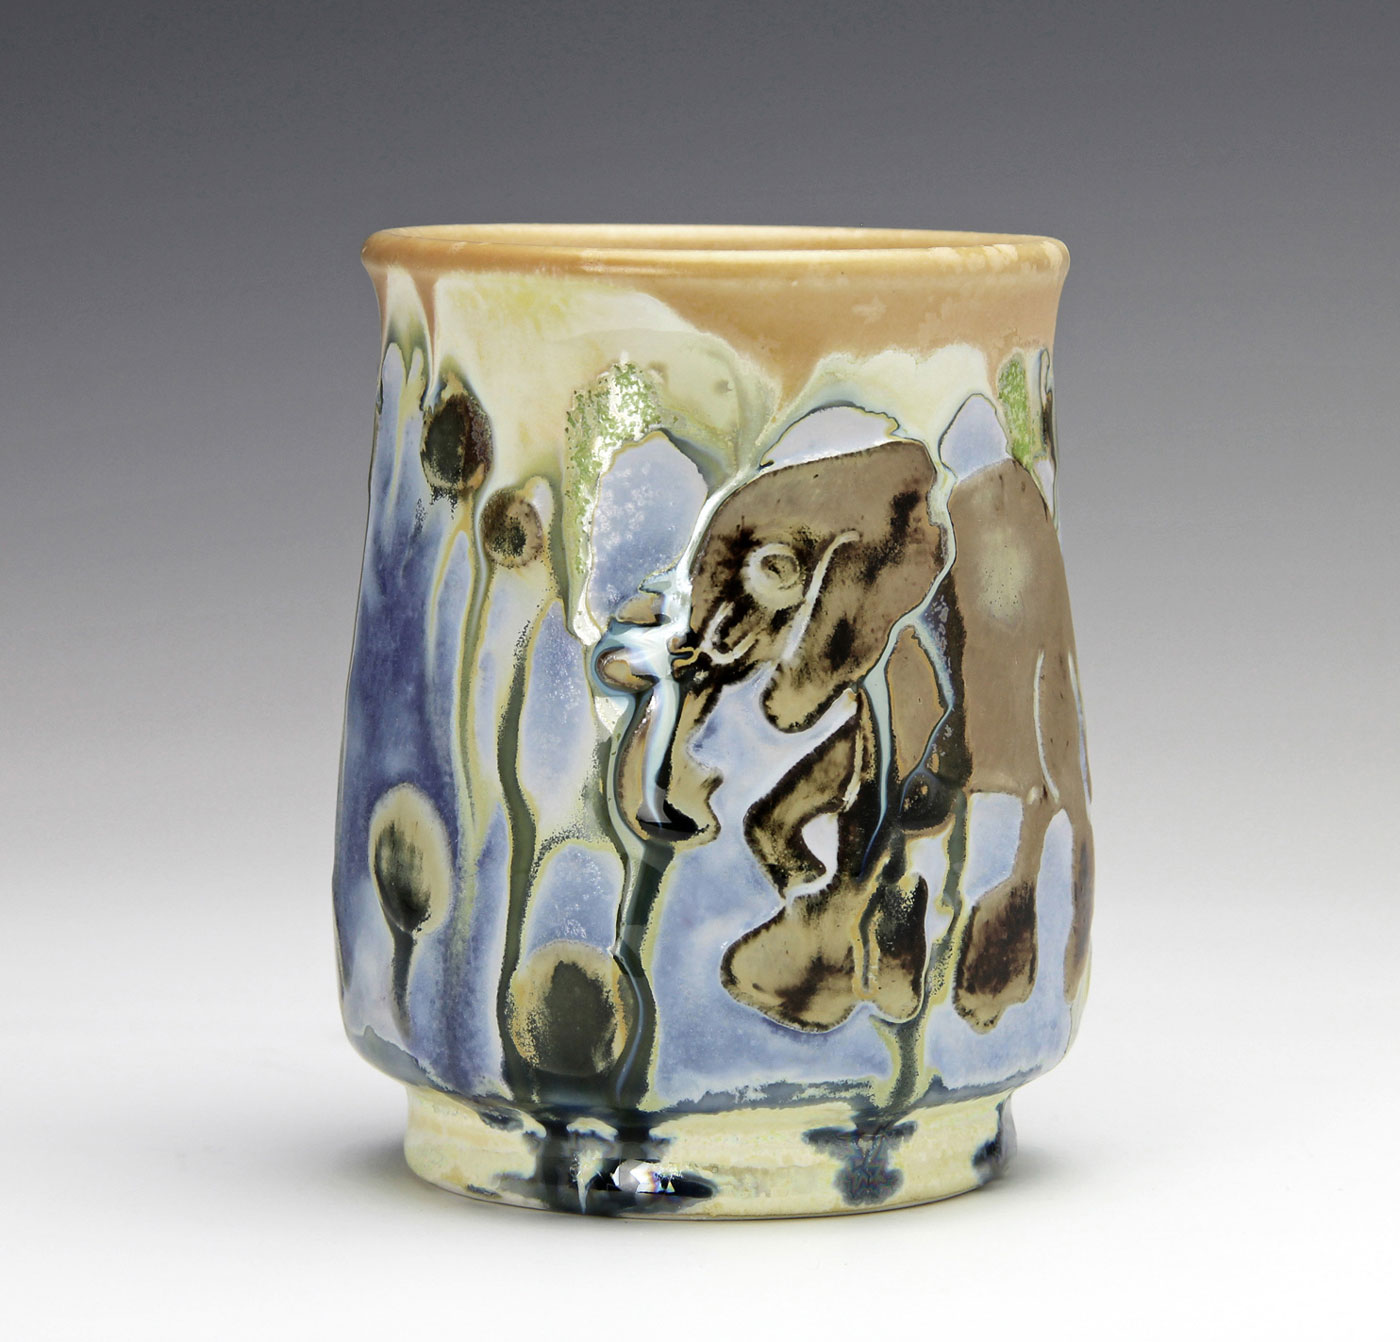 Elephant-on-contemporary-clay-cup-Samantha-Henneke-Seagrove-Pottery.jpg